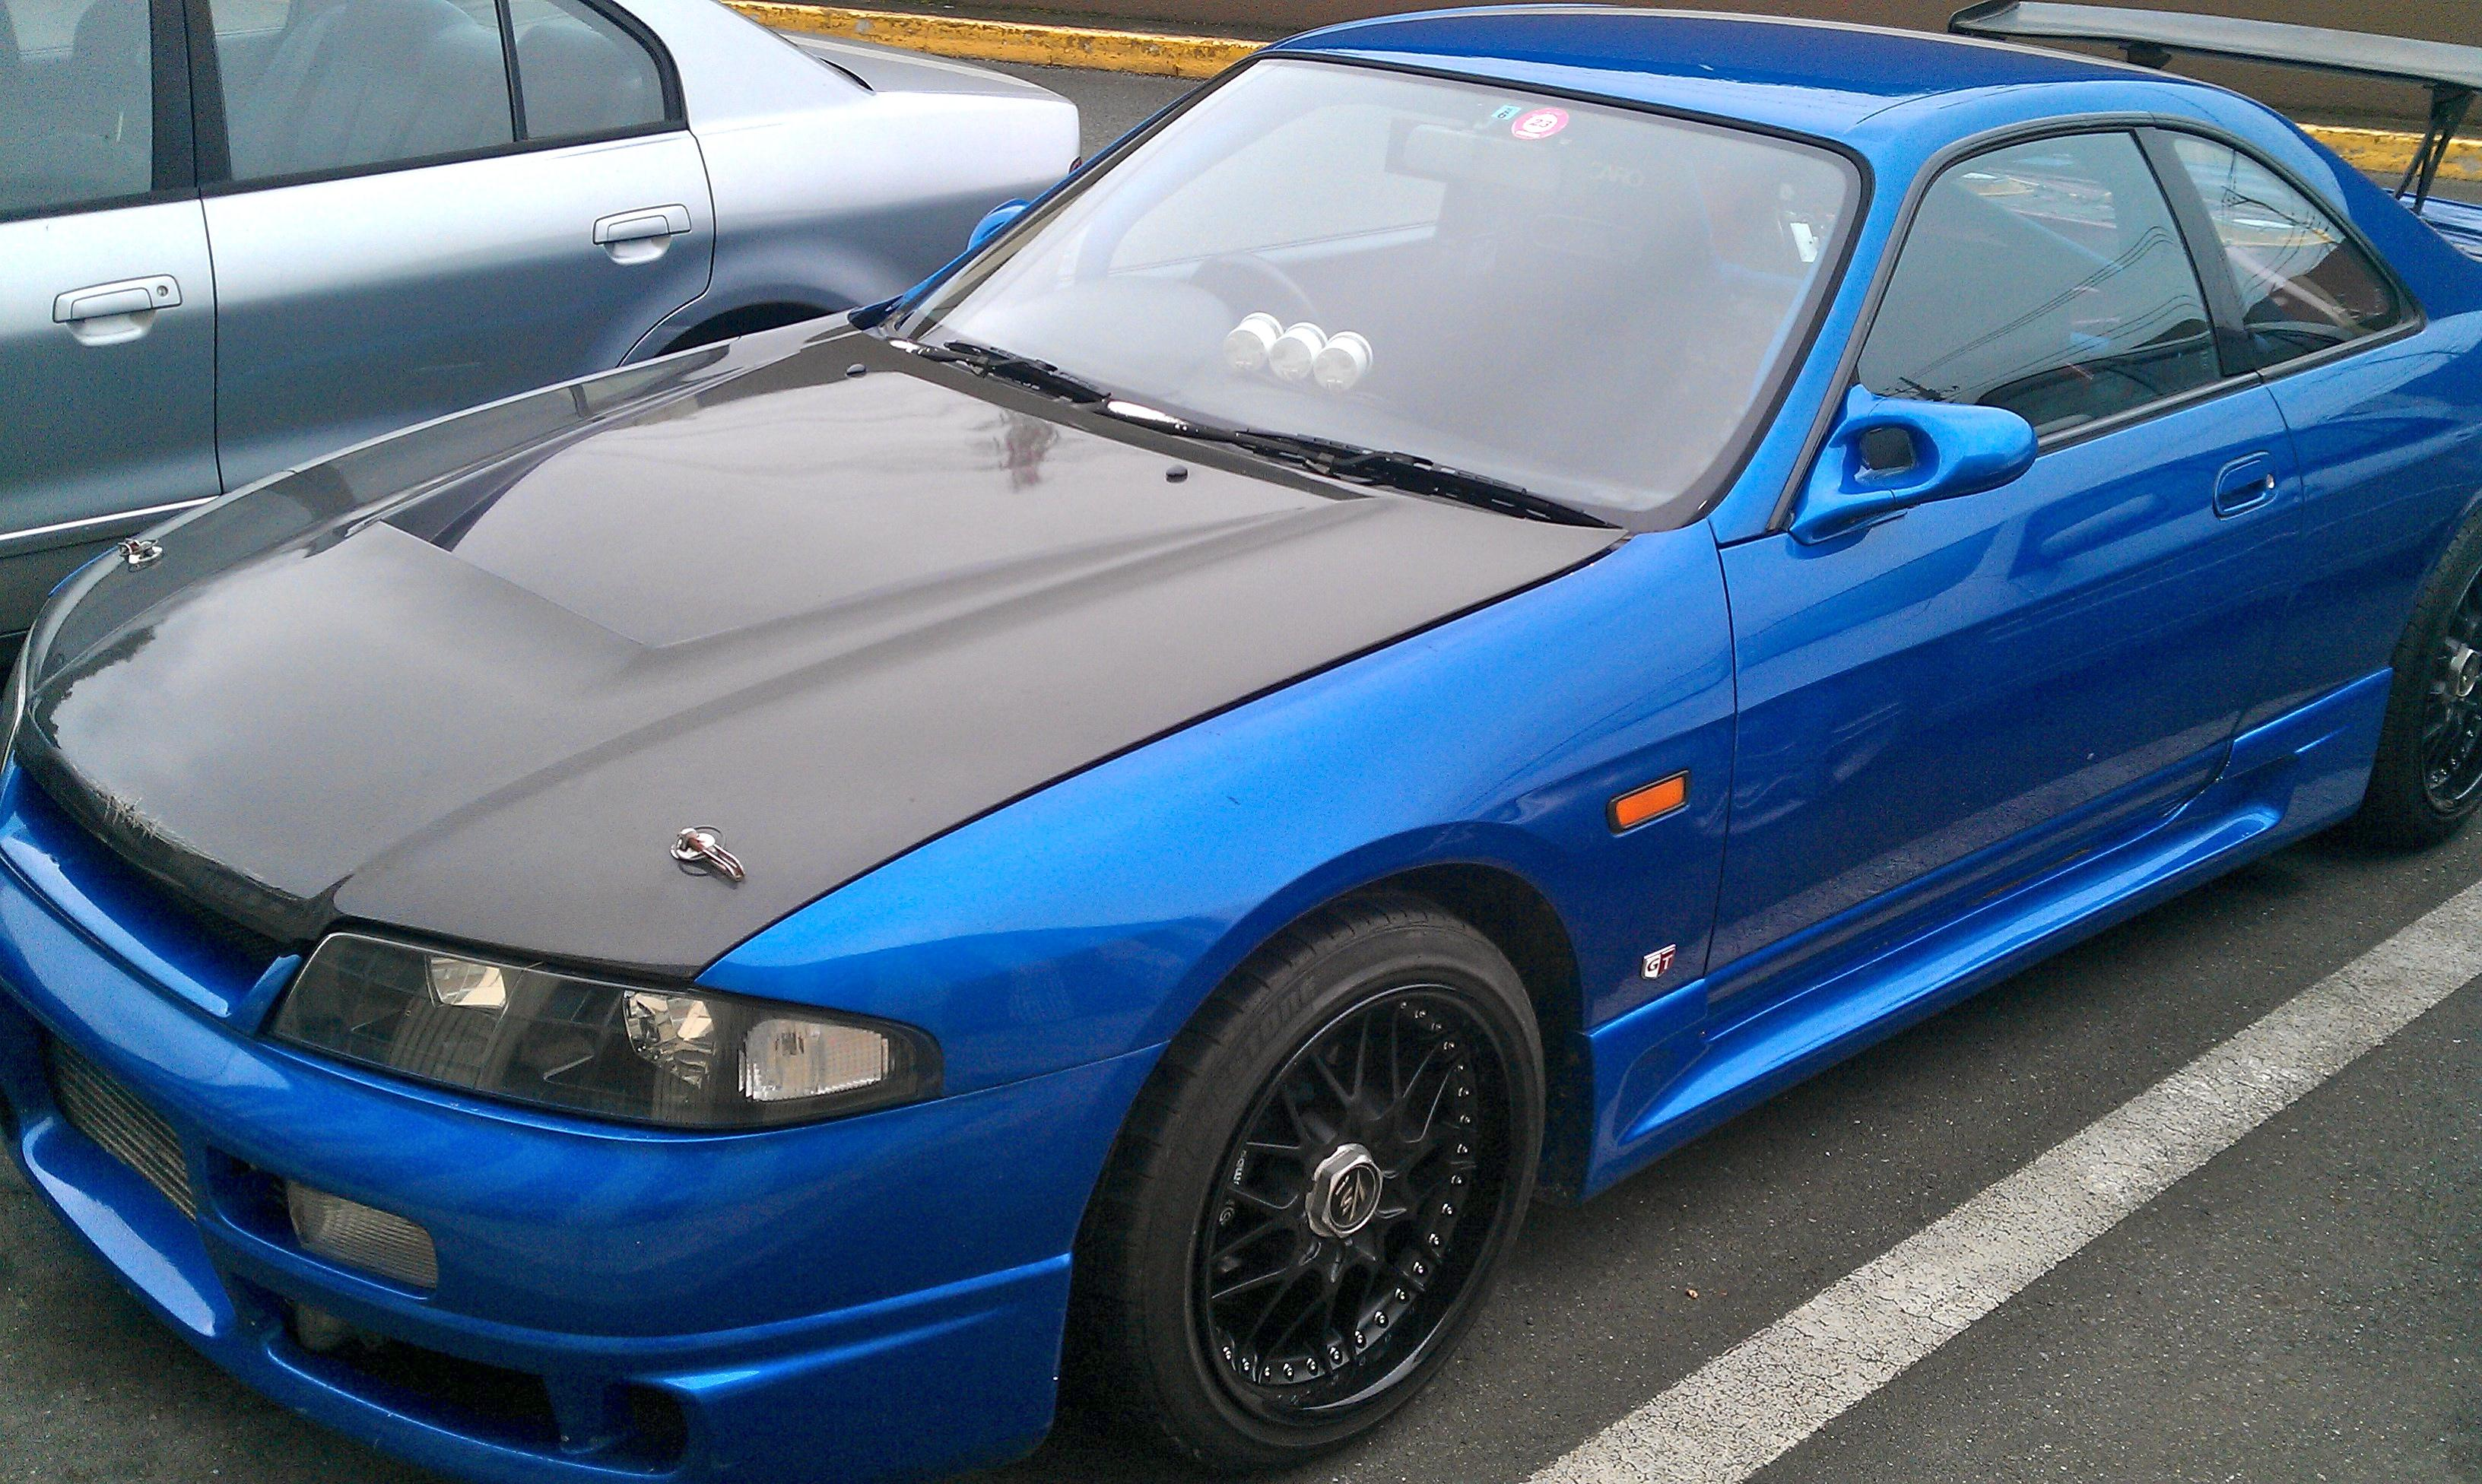 Blaze0303 1995 Nissan Skyline Specs, Photos, Modification ...